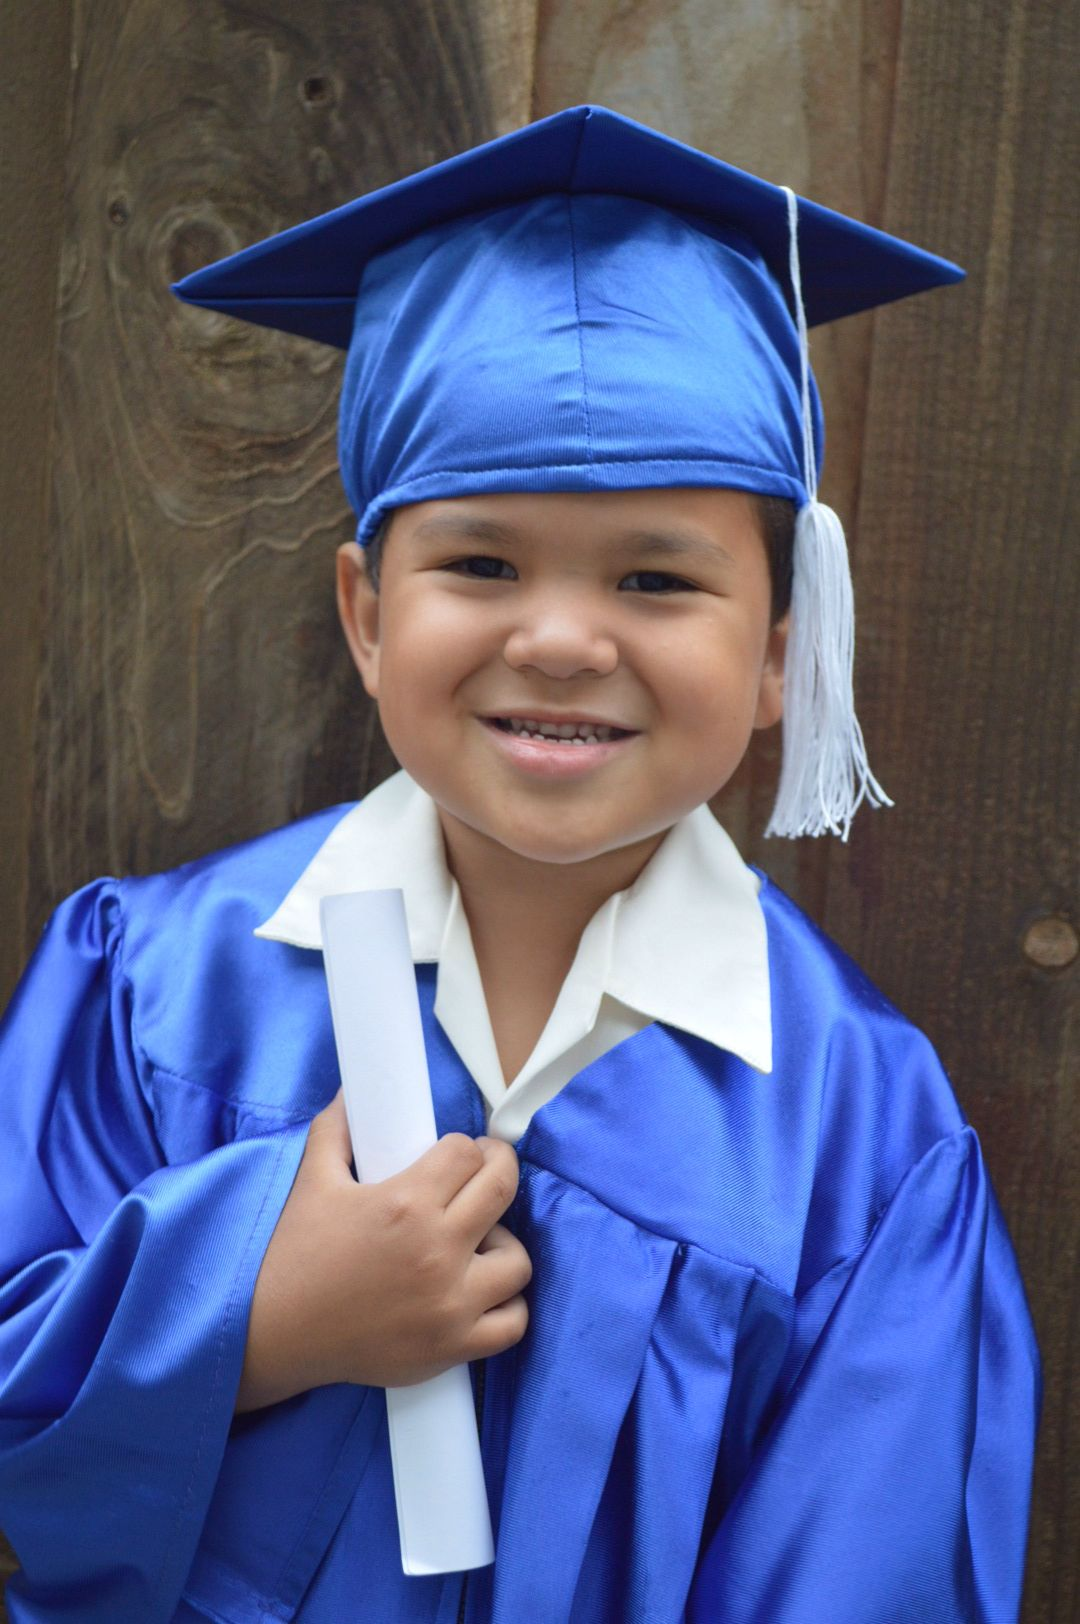 My little Evan in his cap and gown, preschool graduation. | Photos ...